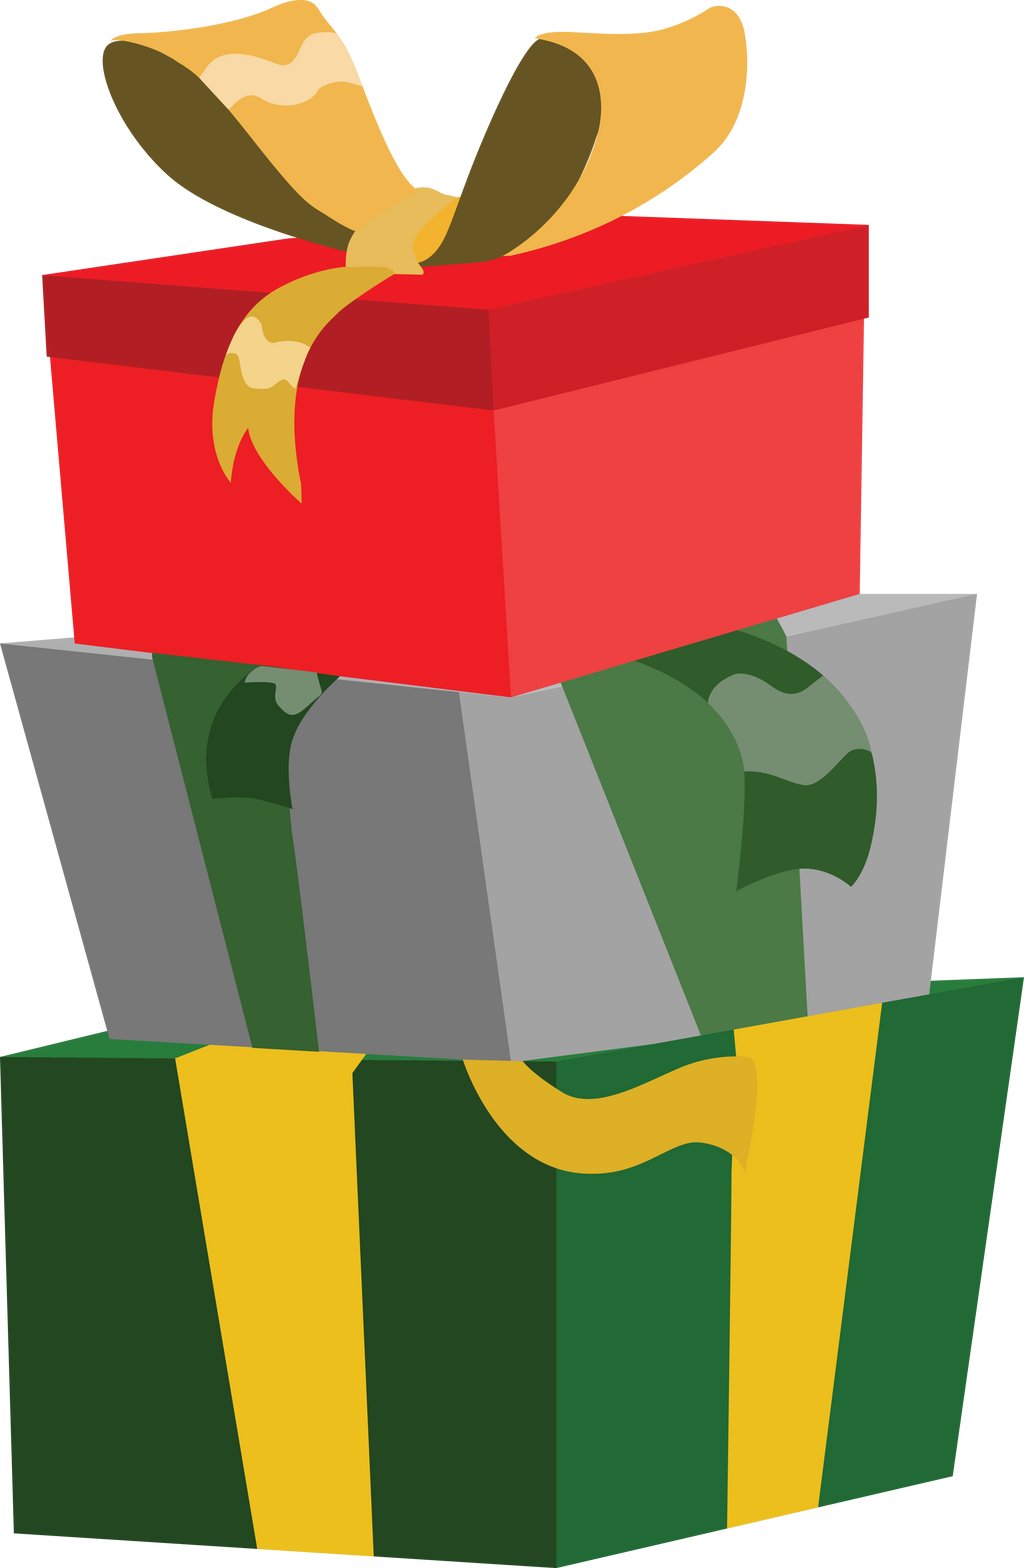 Pony Christmas presents credit free vector by ...